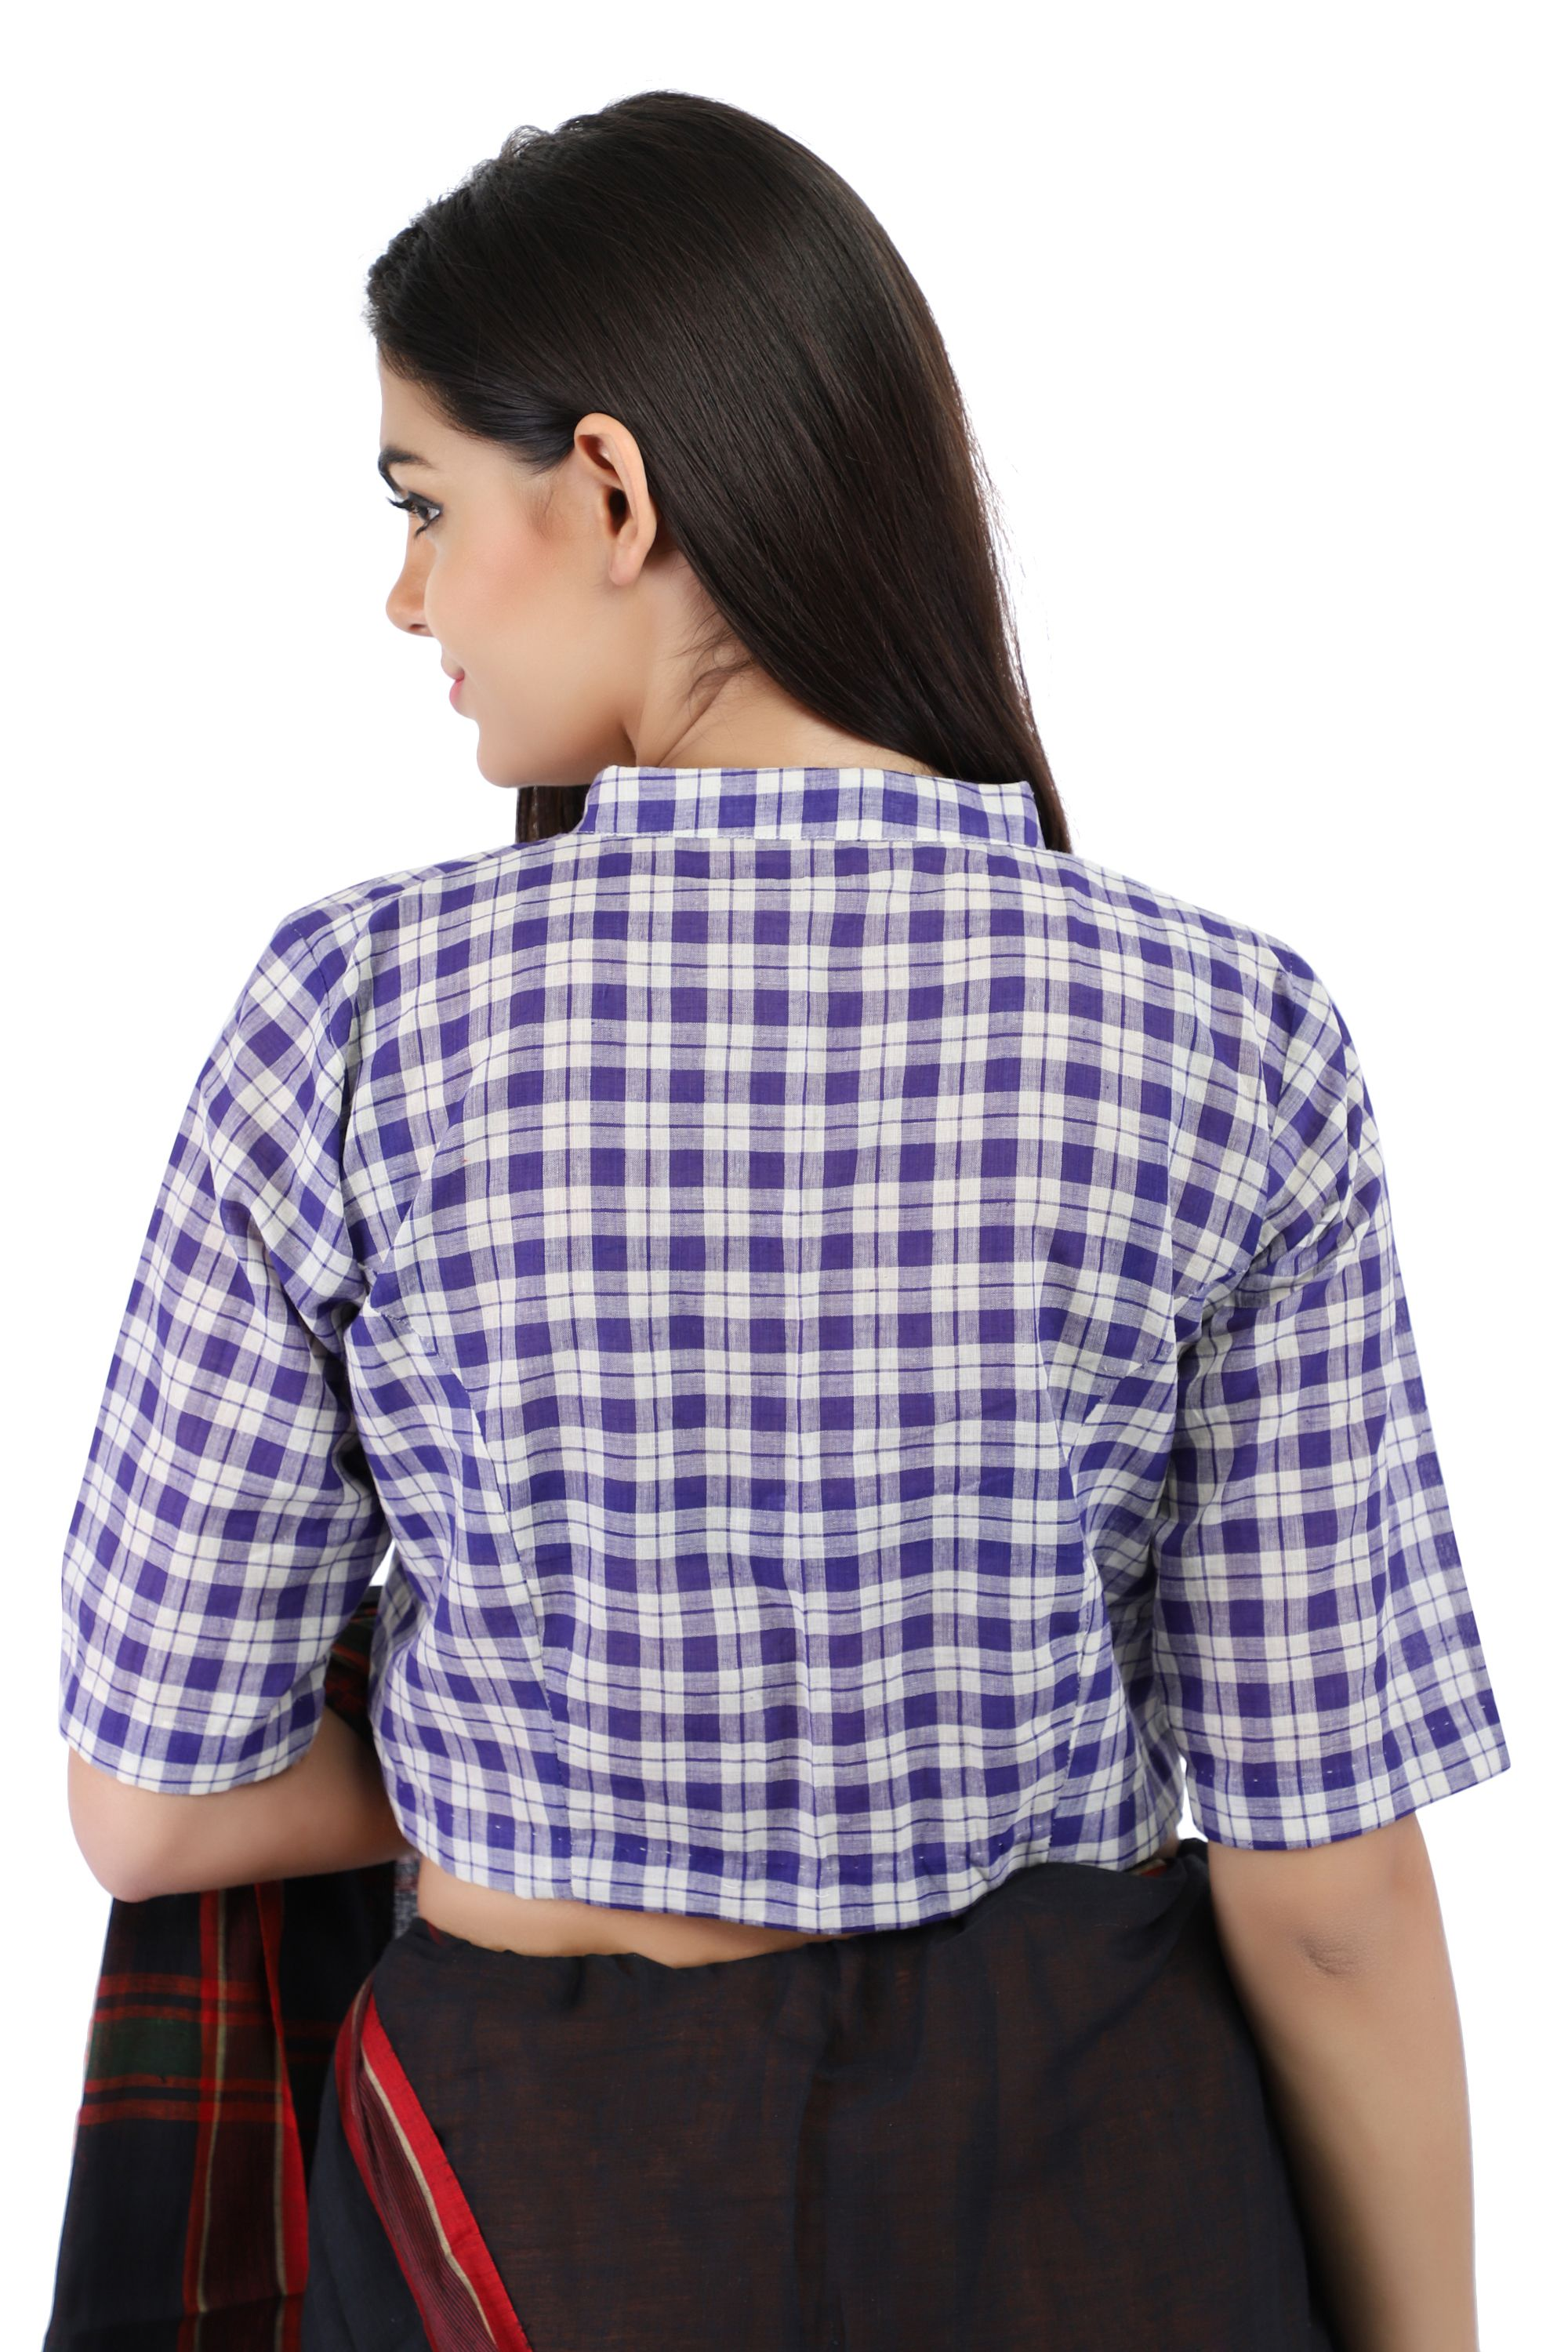 Pure Cotton Handloom Checks Blouse in Purple and White chinese Collar With Hook Closure on Front 2